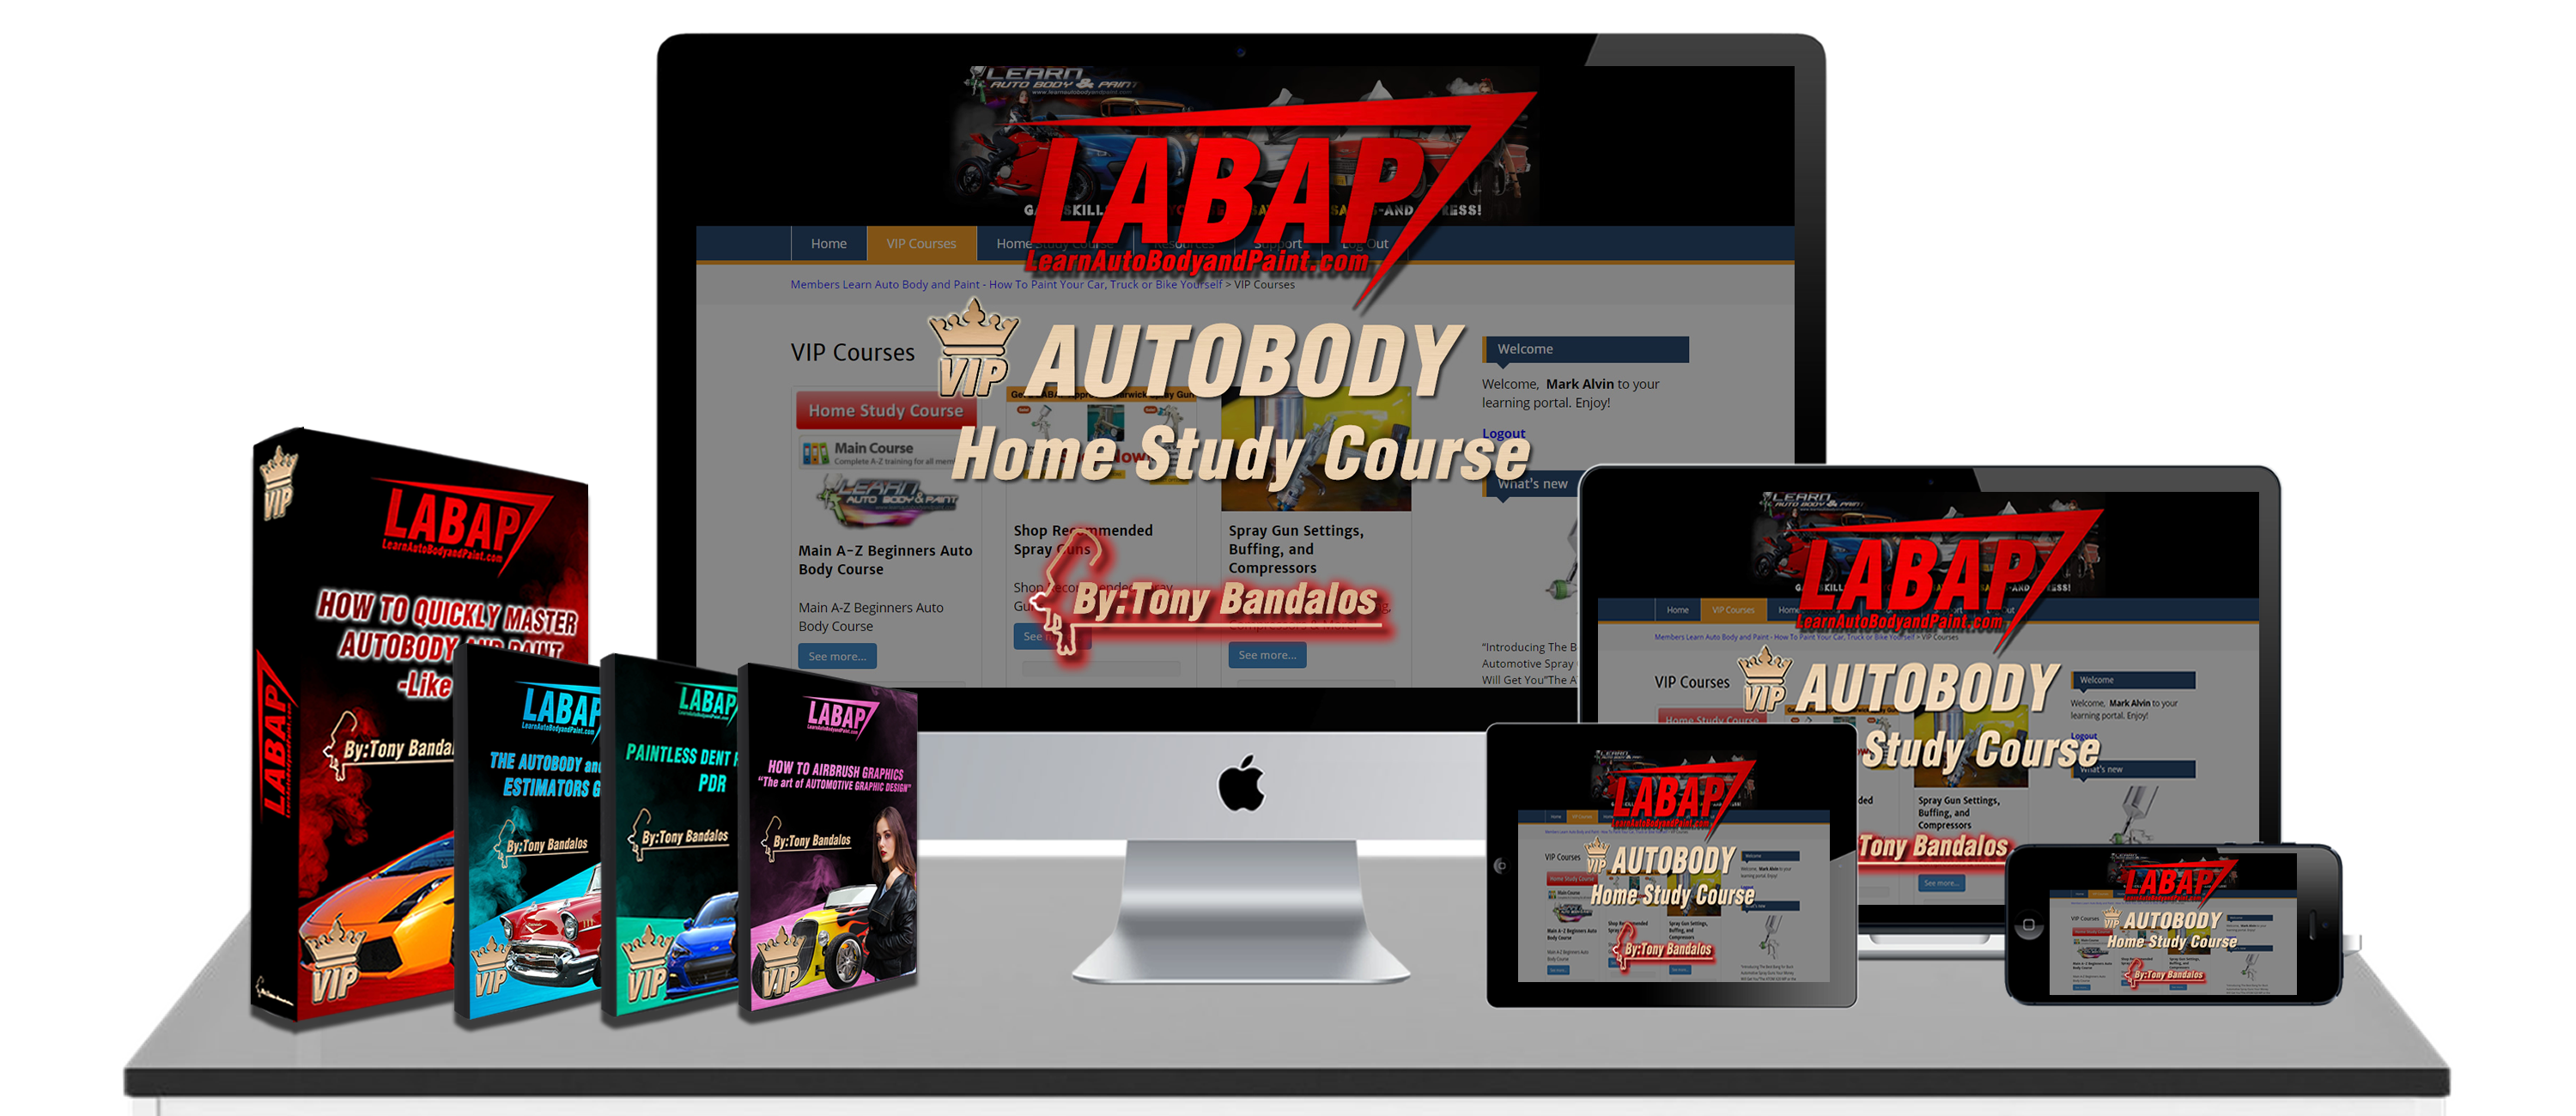 Learn auto body vip mastery program you get over 120 hours of step by step auto body and paint training videos that covers almost every topic you can think of if it doesnt we help you on solutioingenieria Images